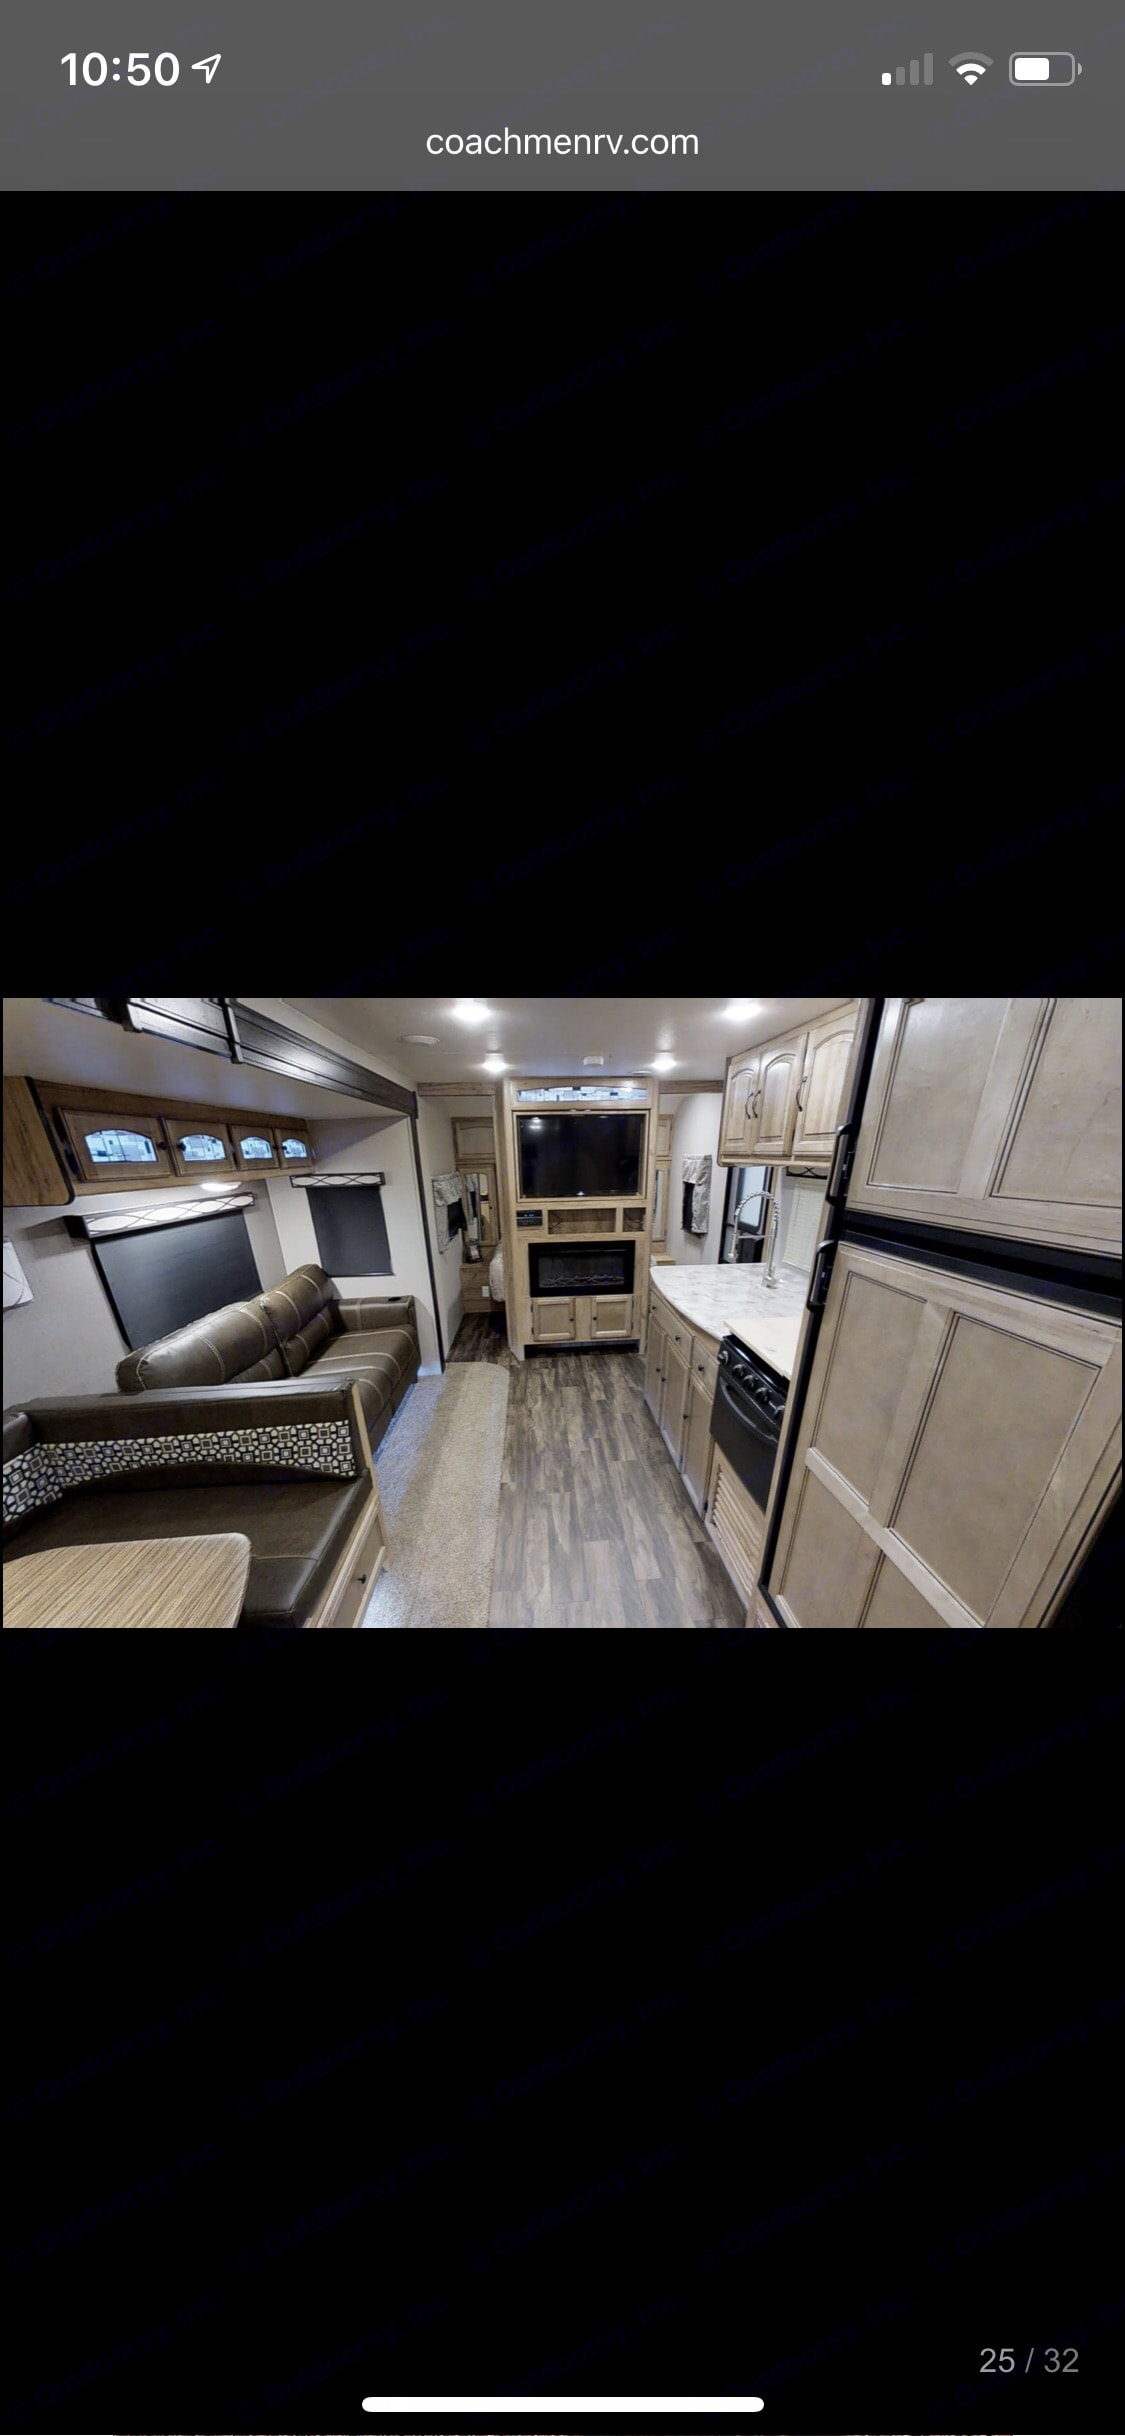 🔥  place and central heat and air and tv plus couch led lighting and usb charging everywhere!. Coachman Freedom liberty express 2018